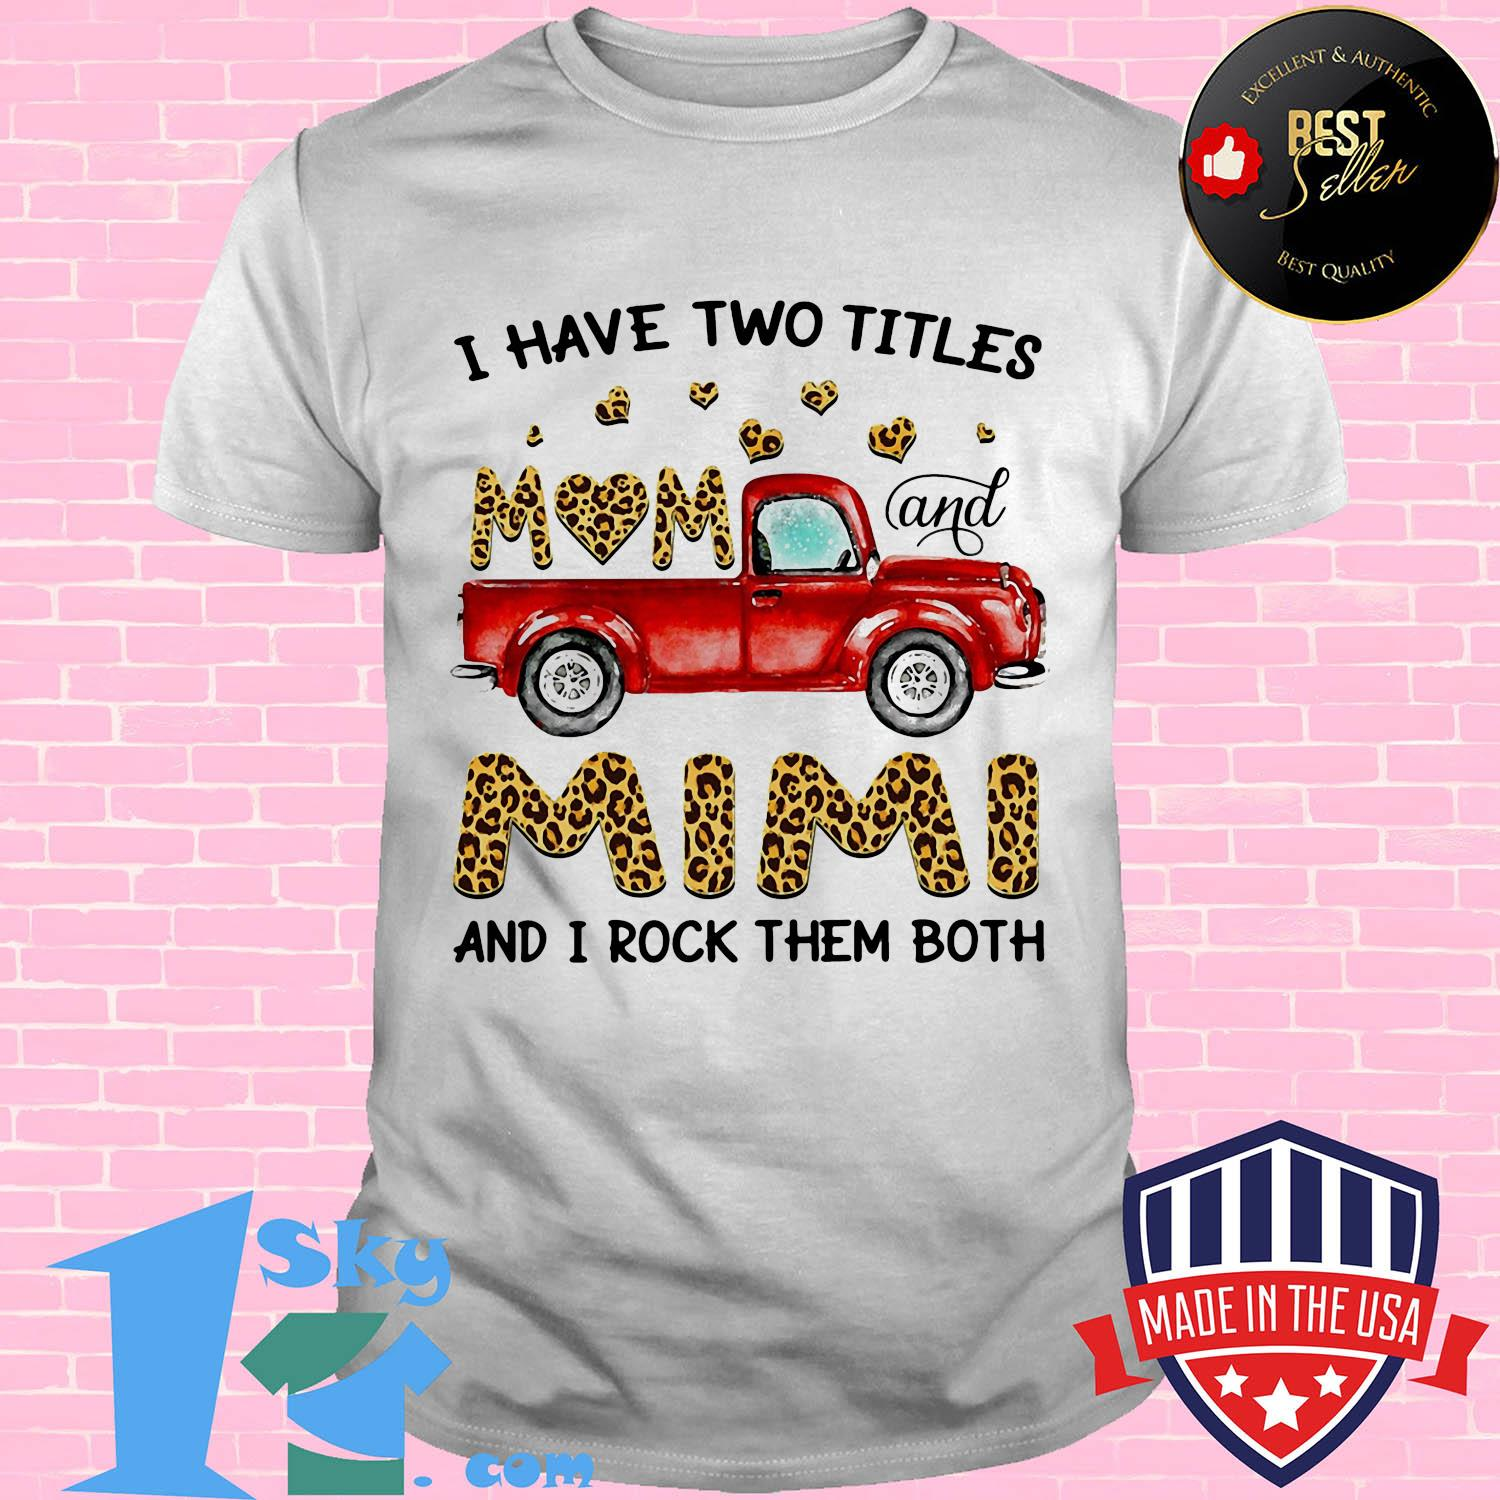 I have two titles mom and Grandma and I rock them both car shirt